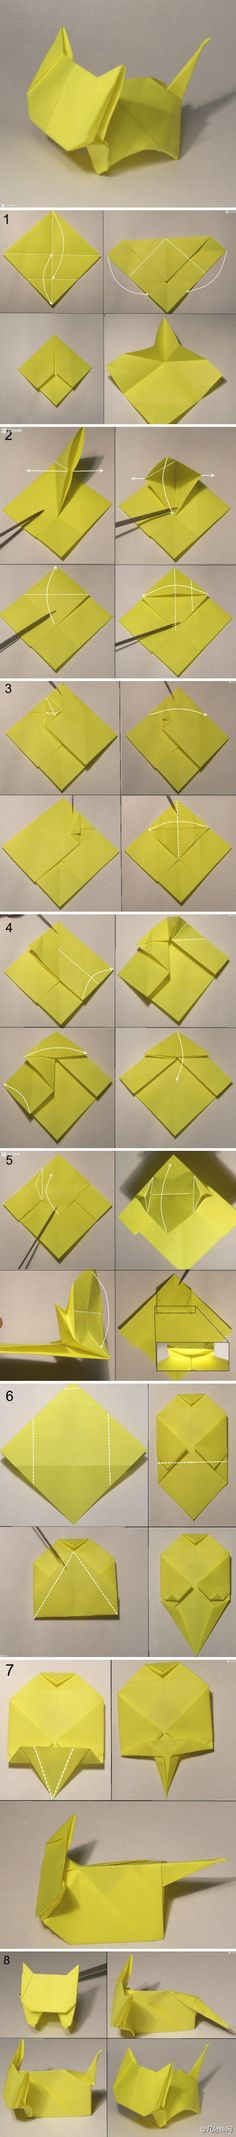 We've always wanted to build origami shapes, but it looked too hard to learn. Turns out we were wrong, we found these awesome origami tutorials that would allow any beginner to start building origami shapes. Source by Gato Origami, Origami Simple, Instruções Origami, Origami Shapes, Origami And Kirigami, Paper Crafts Origami, Oragami, Diy Paper, Origami Tattoo